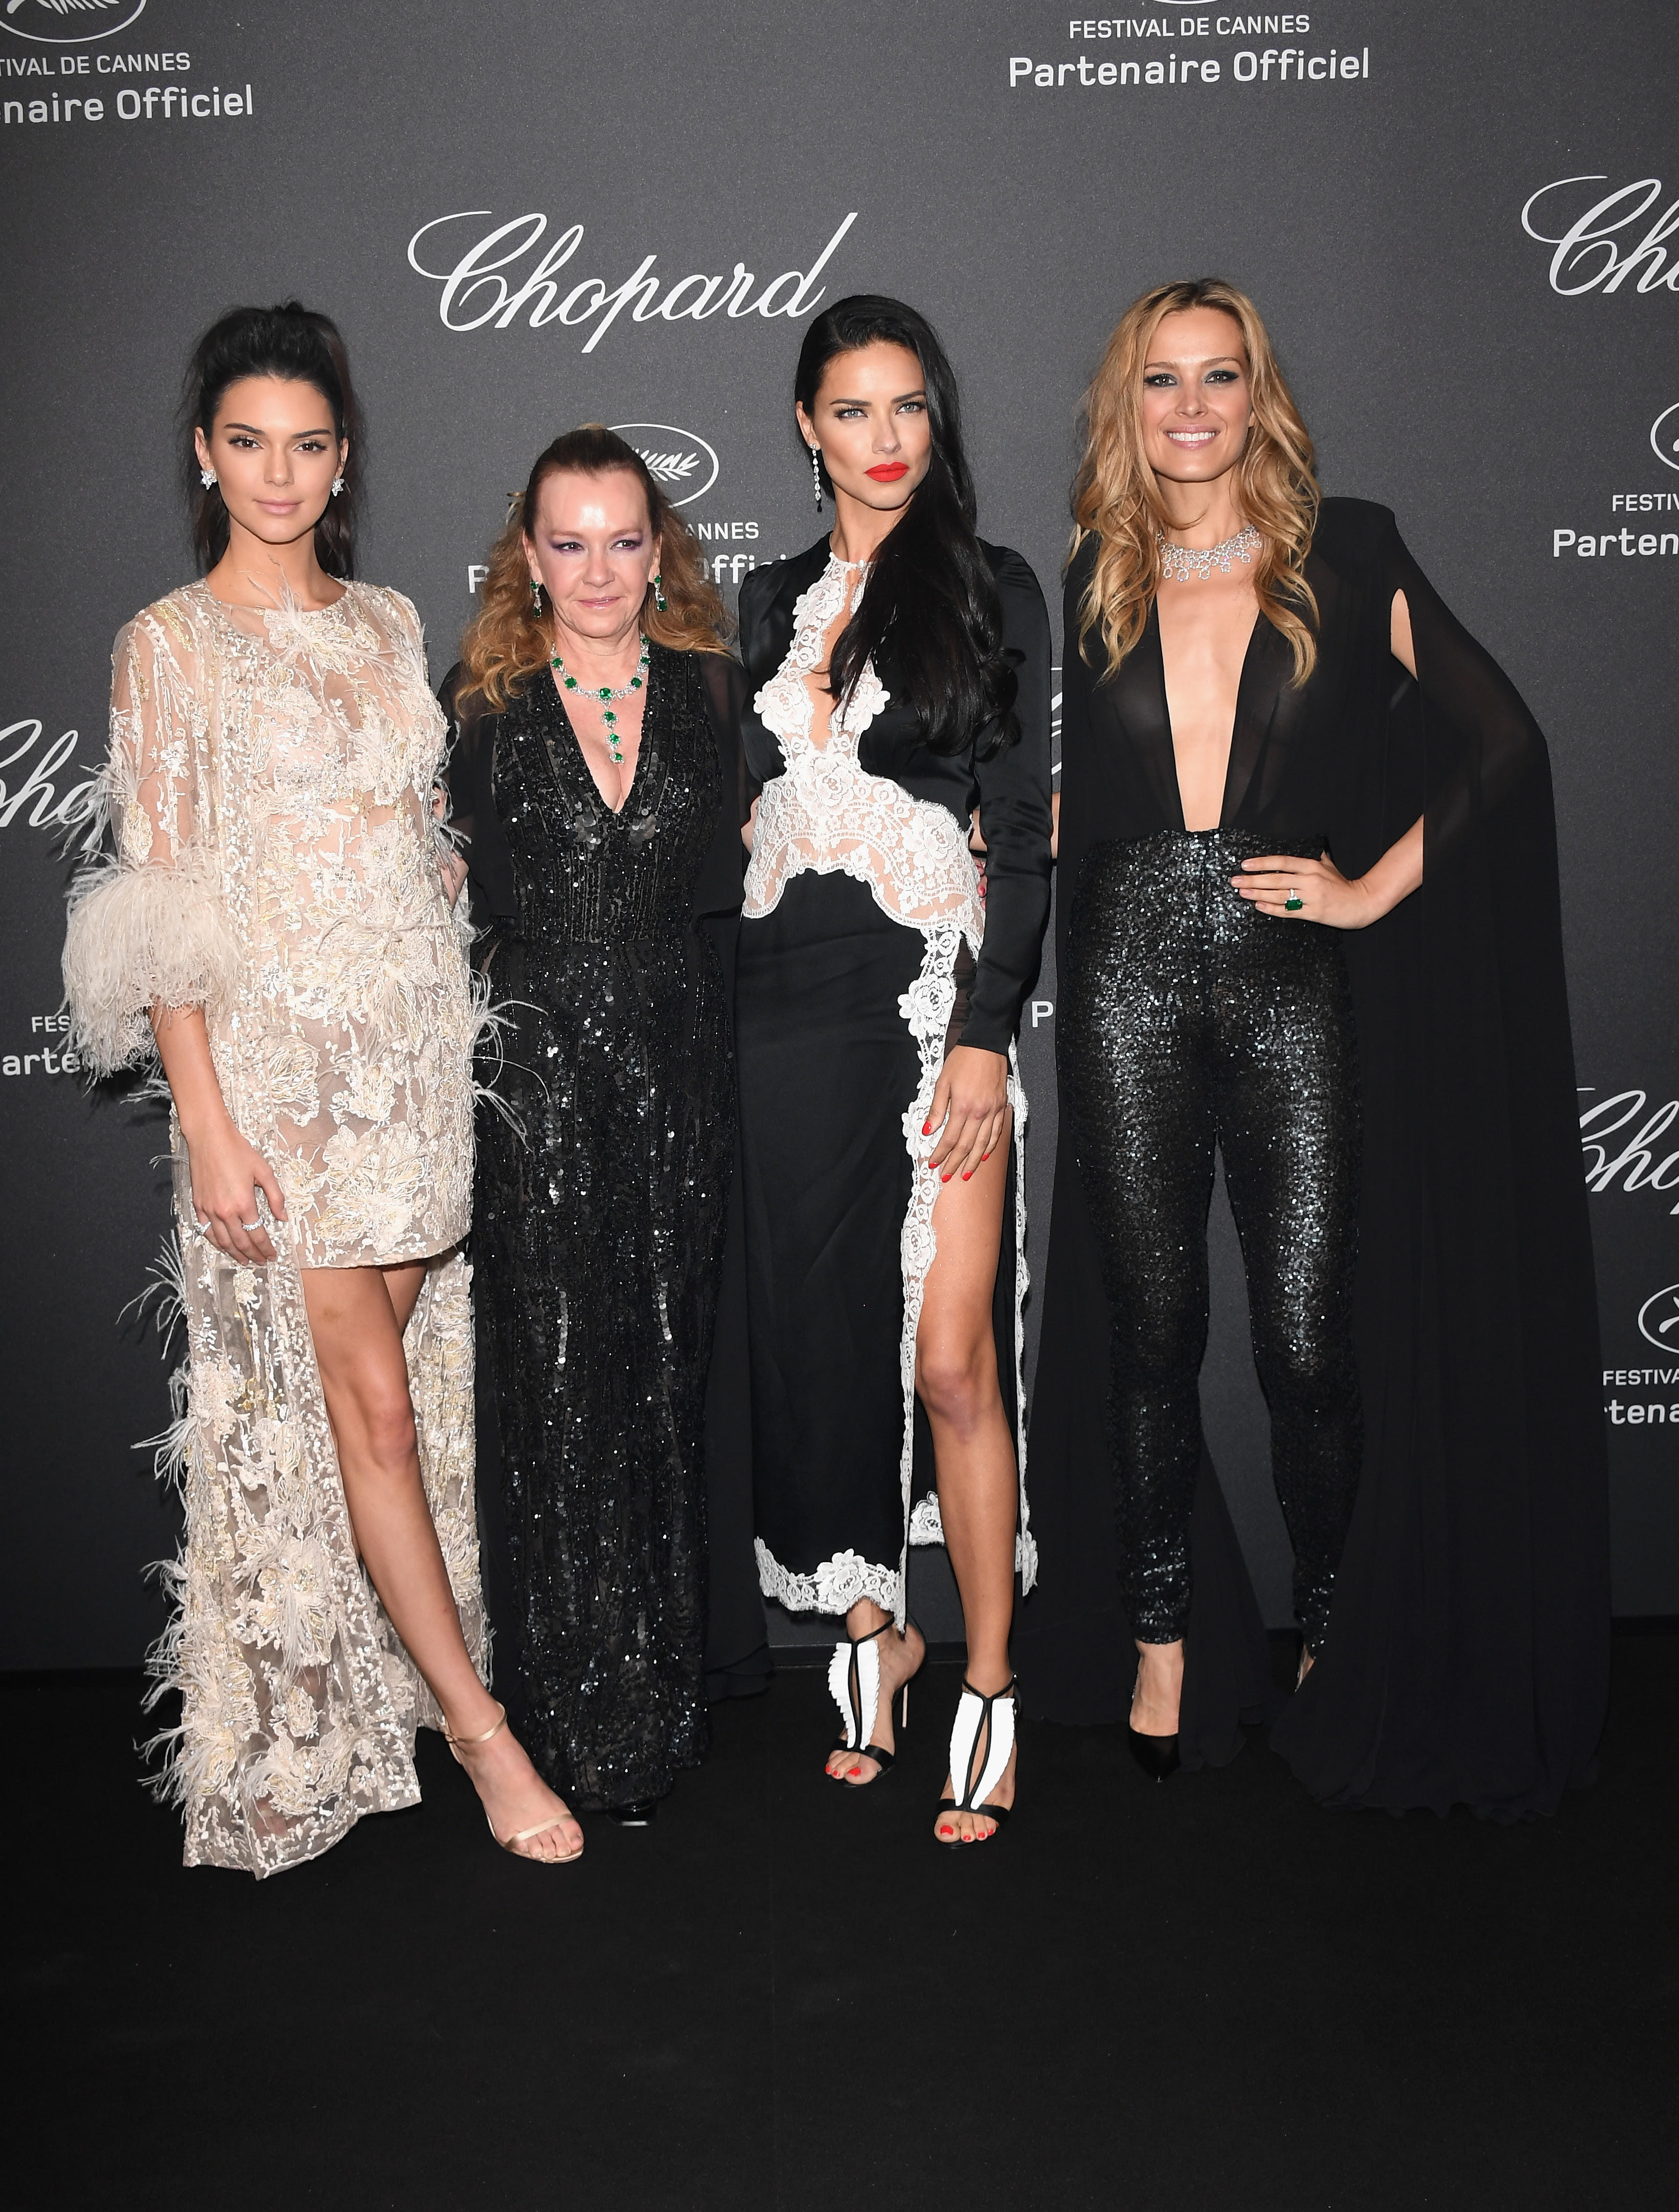 THE MOST GLAMOROUS LOOKS AT CANNES FILM FESTIVAL 2016